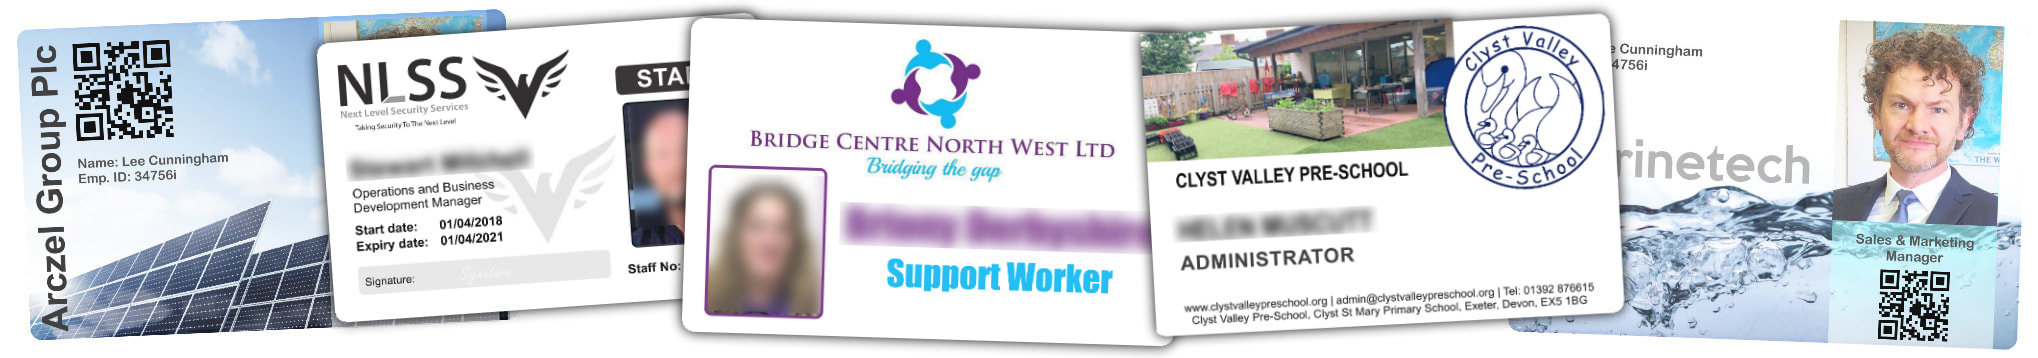 TOWN examples of staff photo ID cards | samples of employee Identity card printing | Workers ID cards printed in